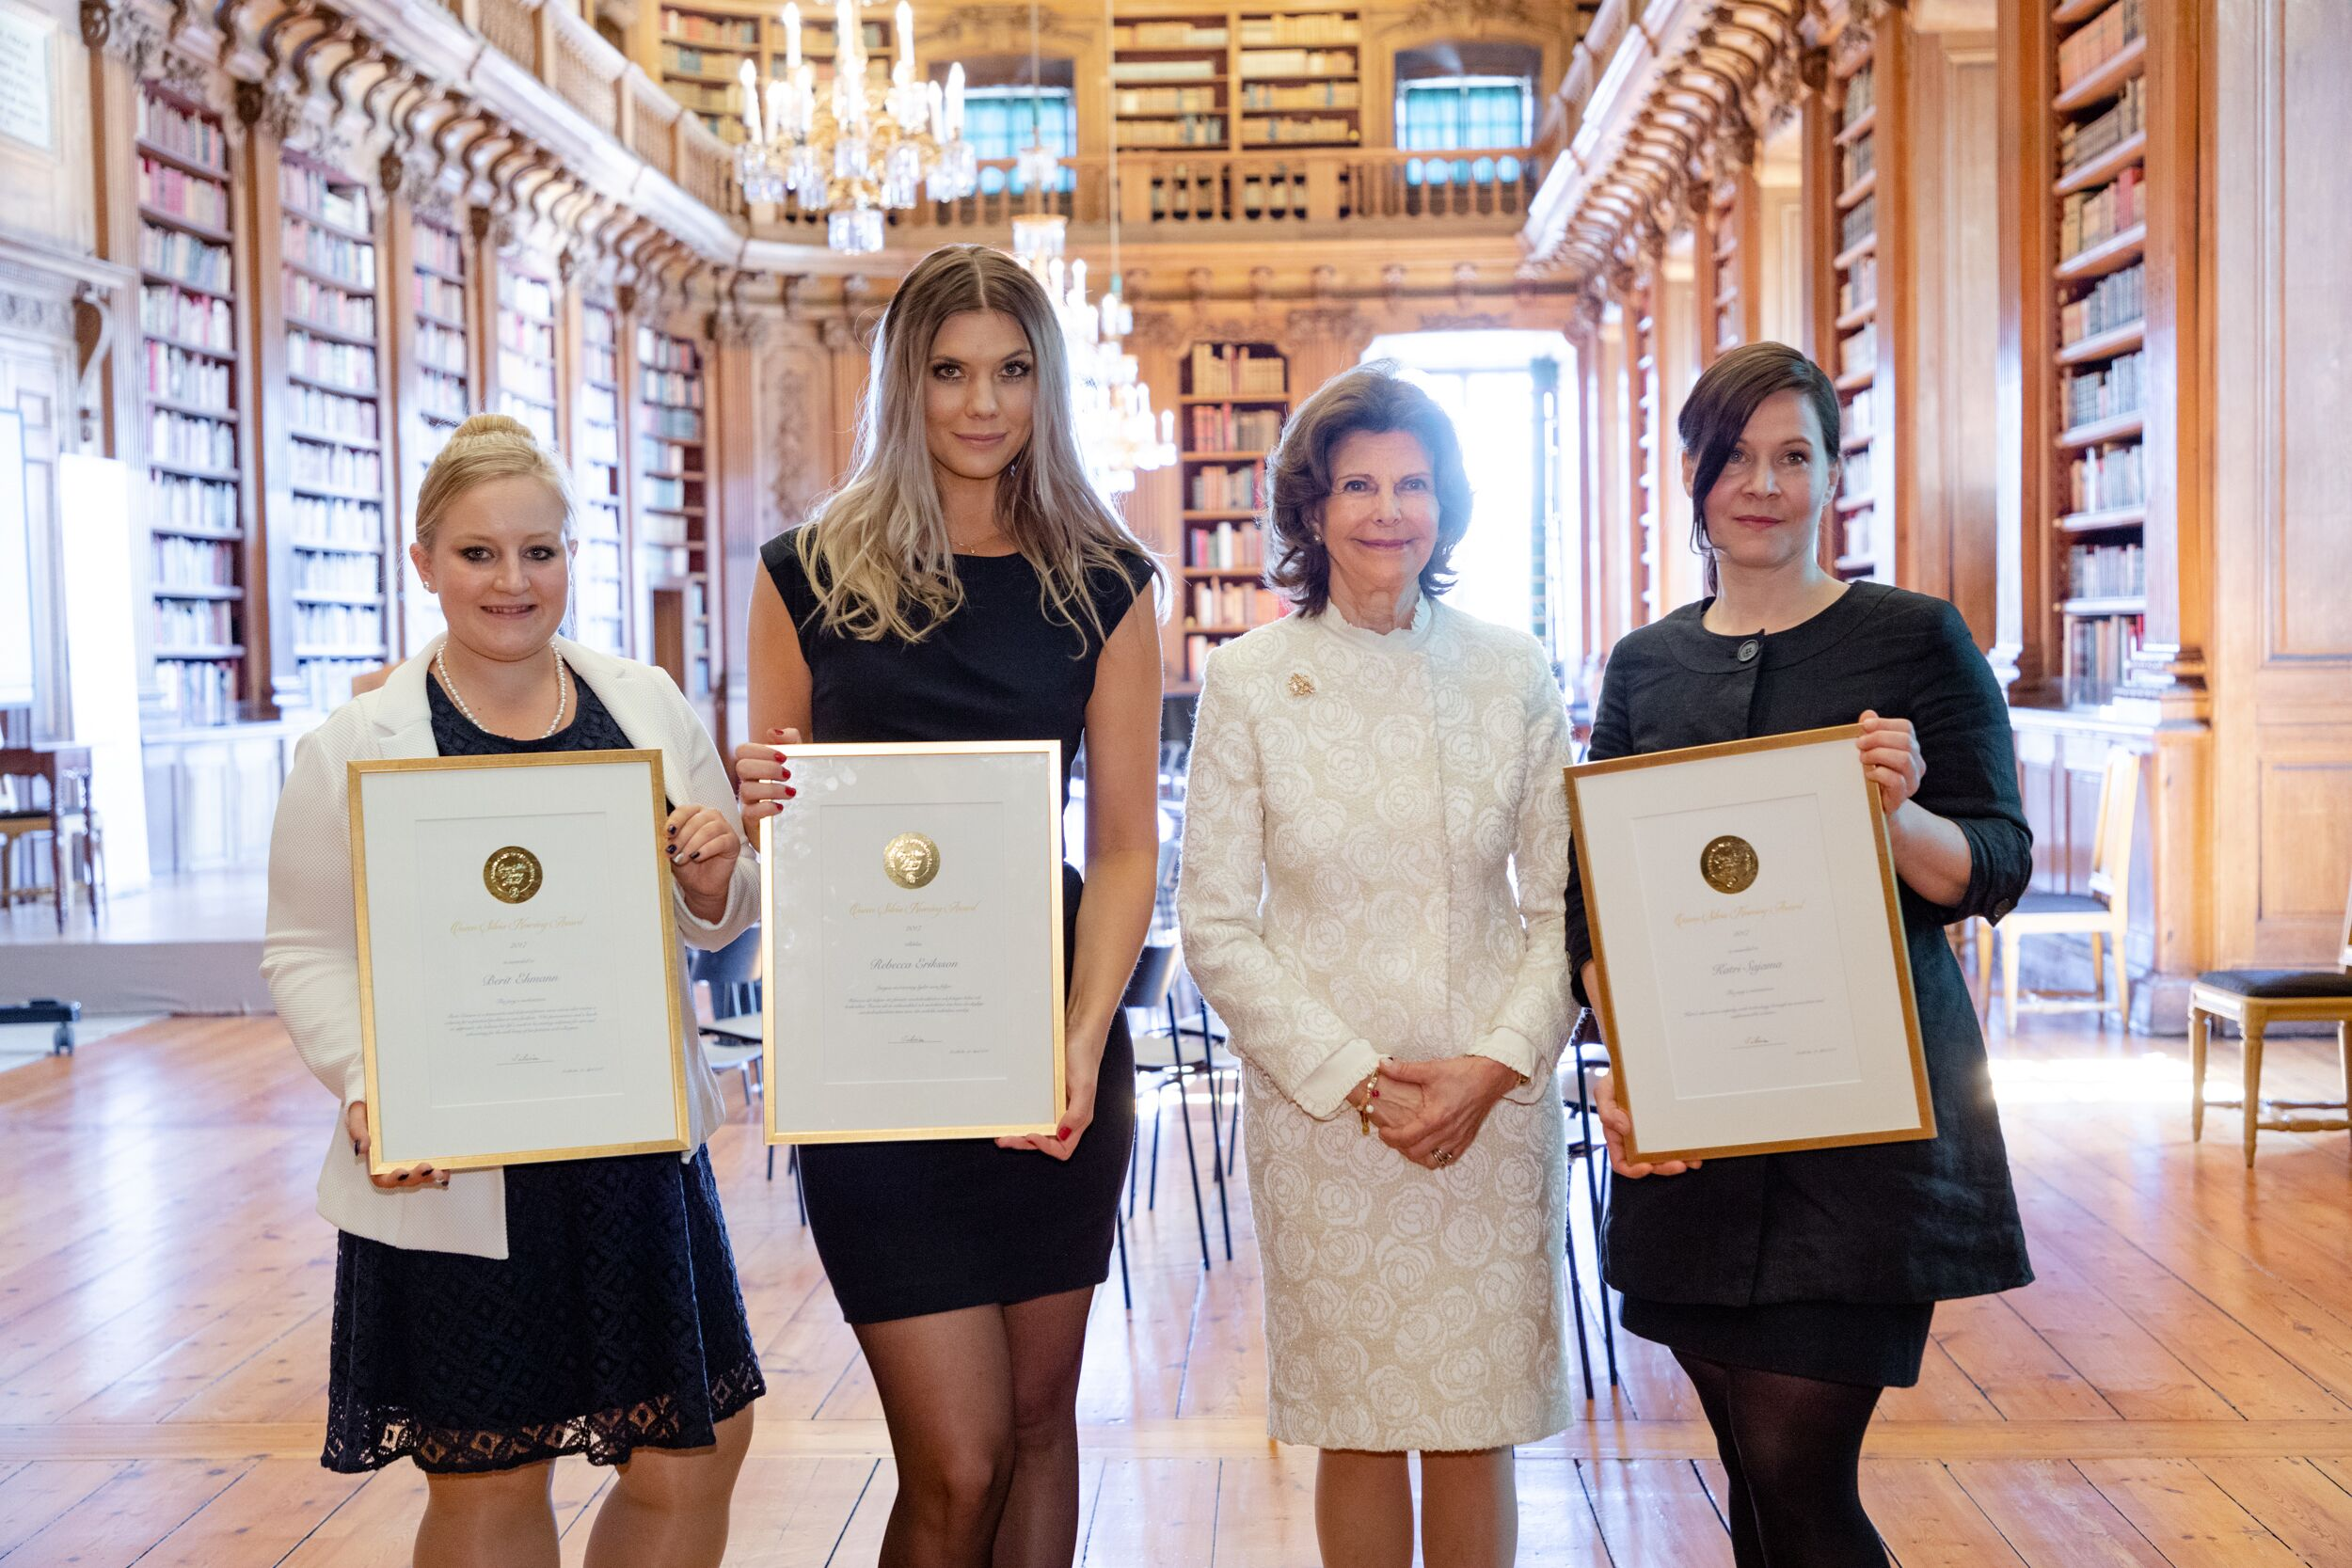 Queen Silvia Nursing Awards